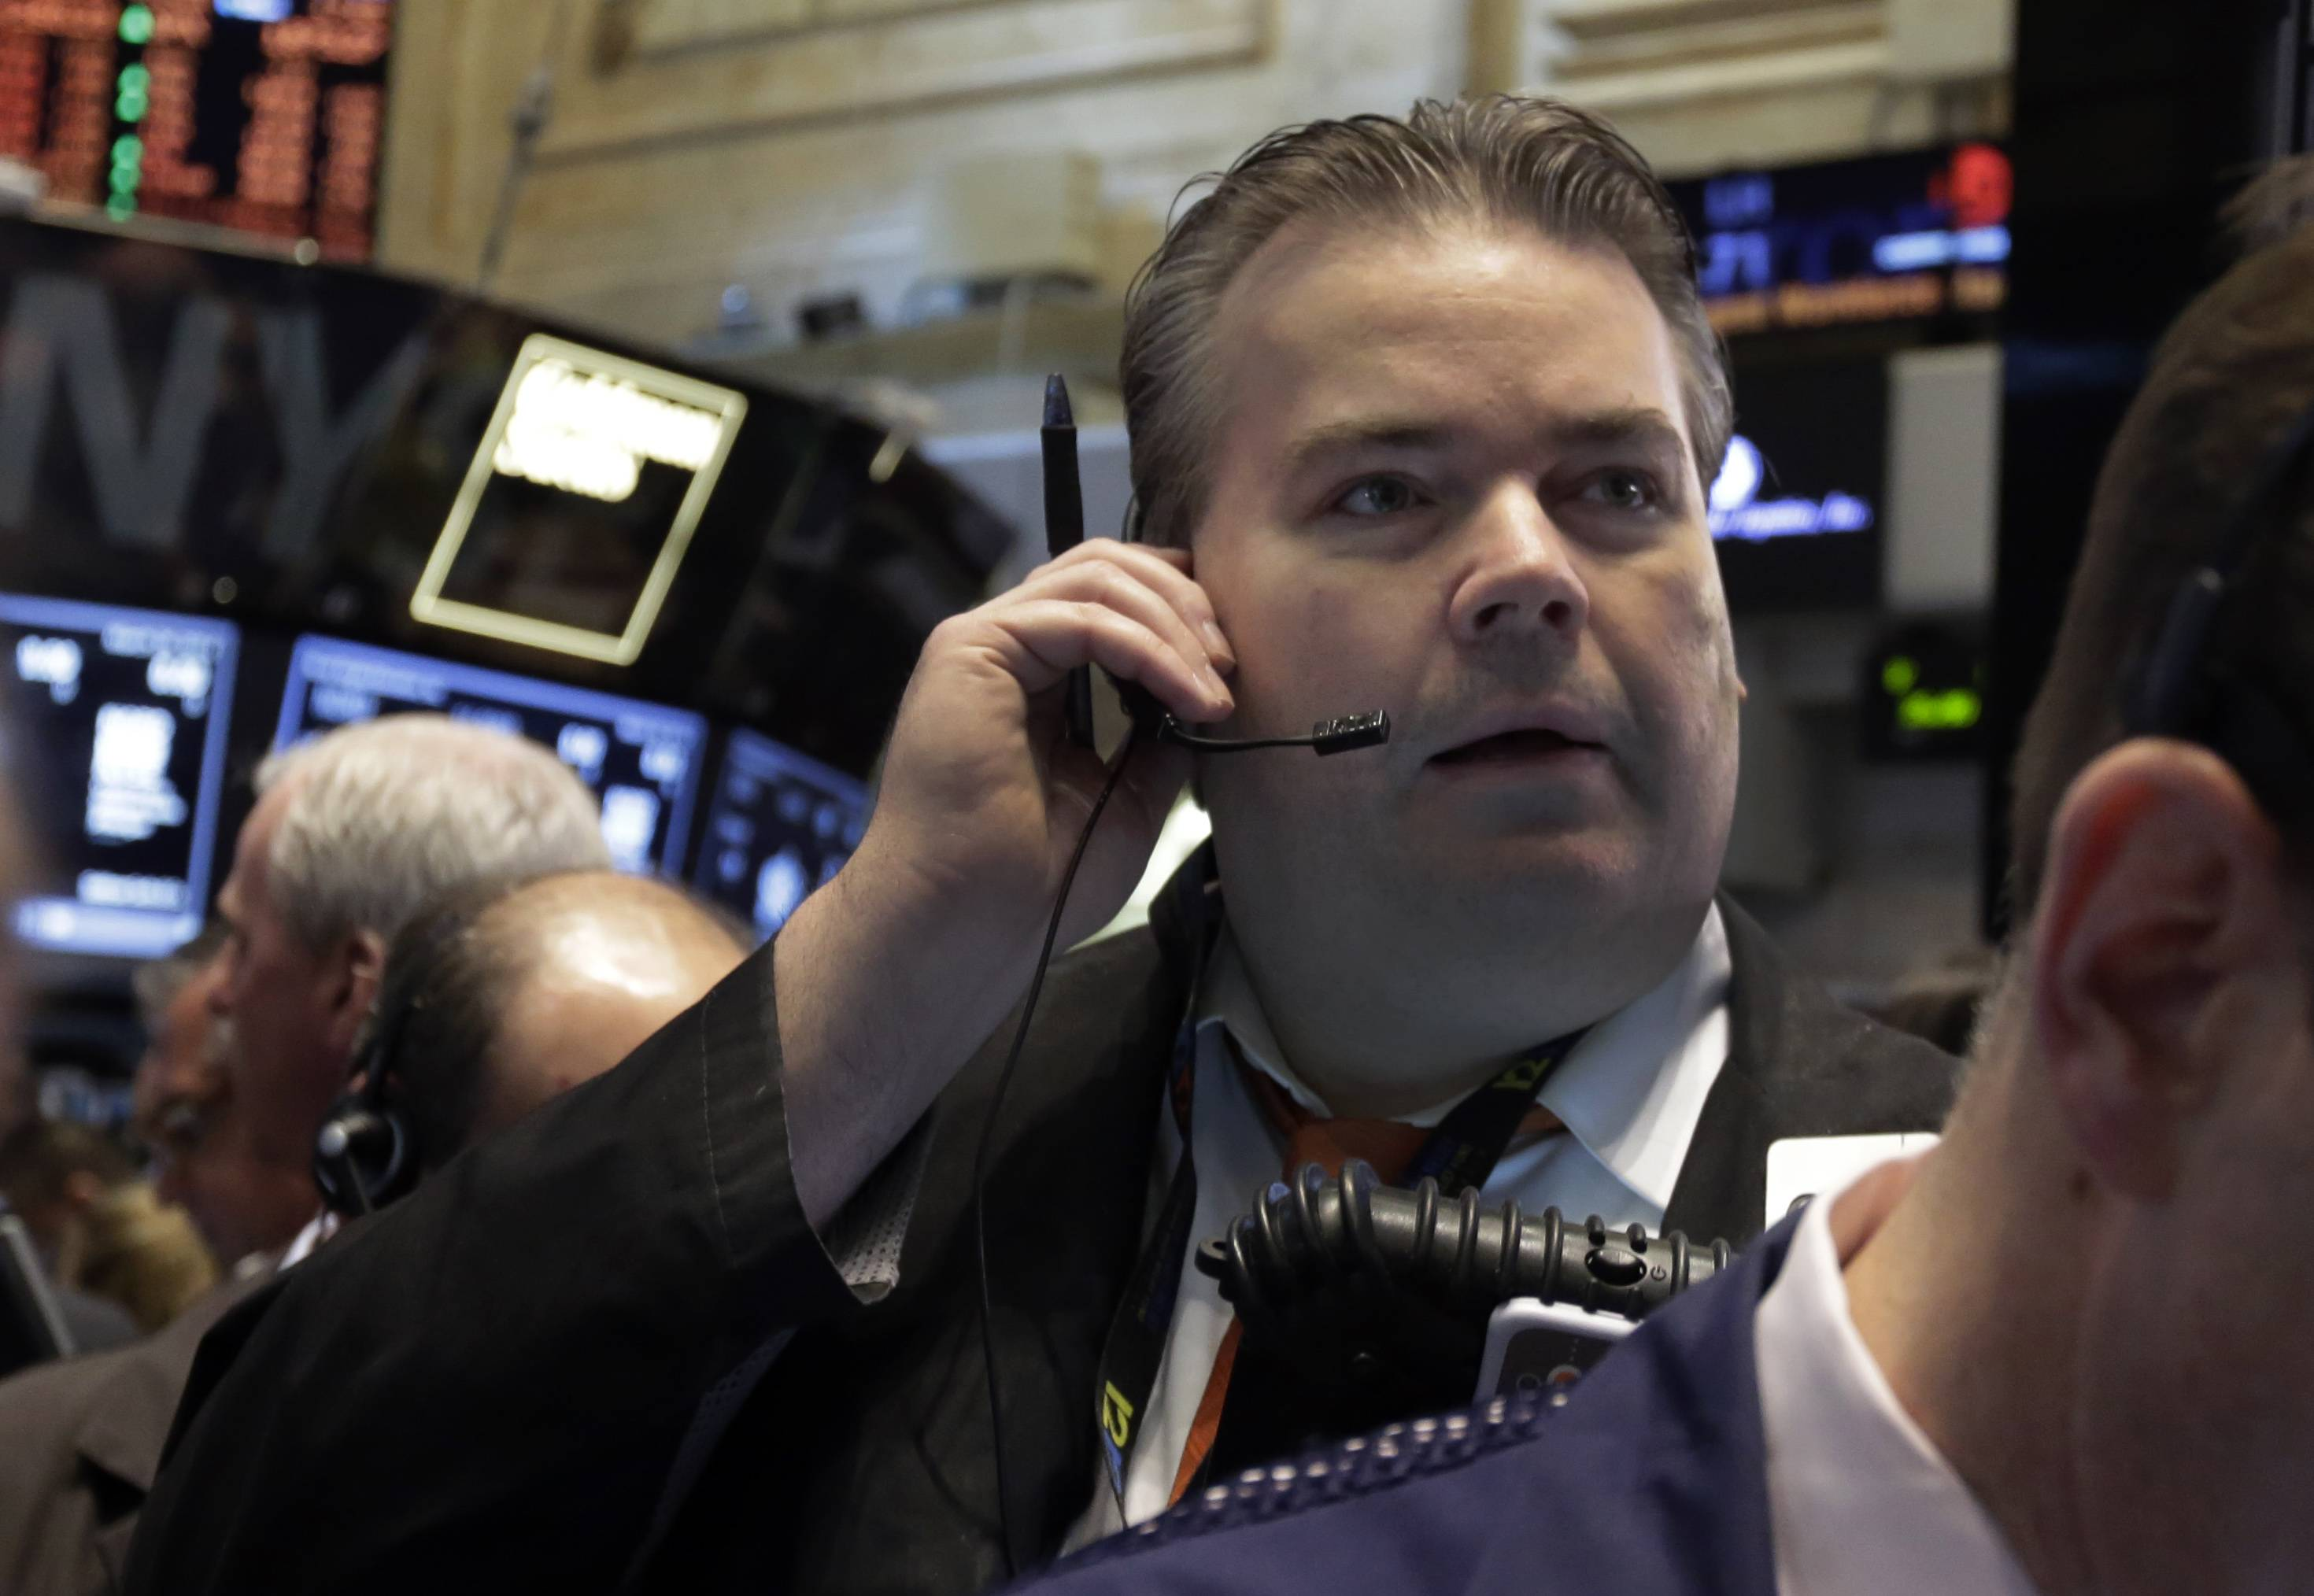 U.S. stocks rose a fourth day on Wednesday, with the Standard & Poor's 500 Index extending a record, as data showing companies added to payrolls last month fueled optimism on growth in the economy.